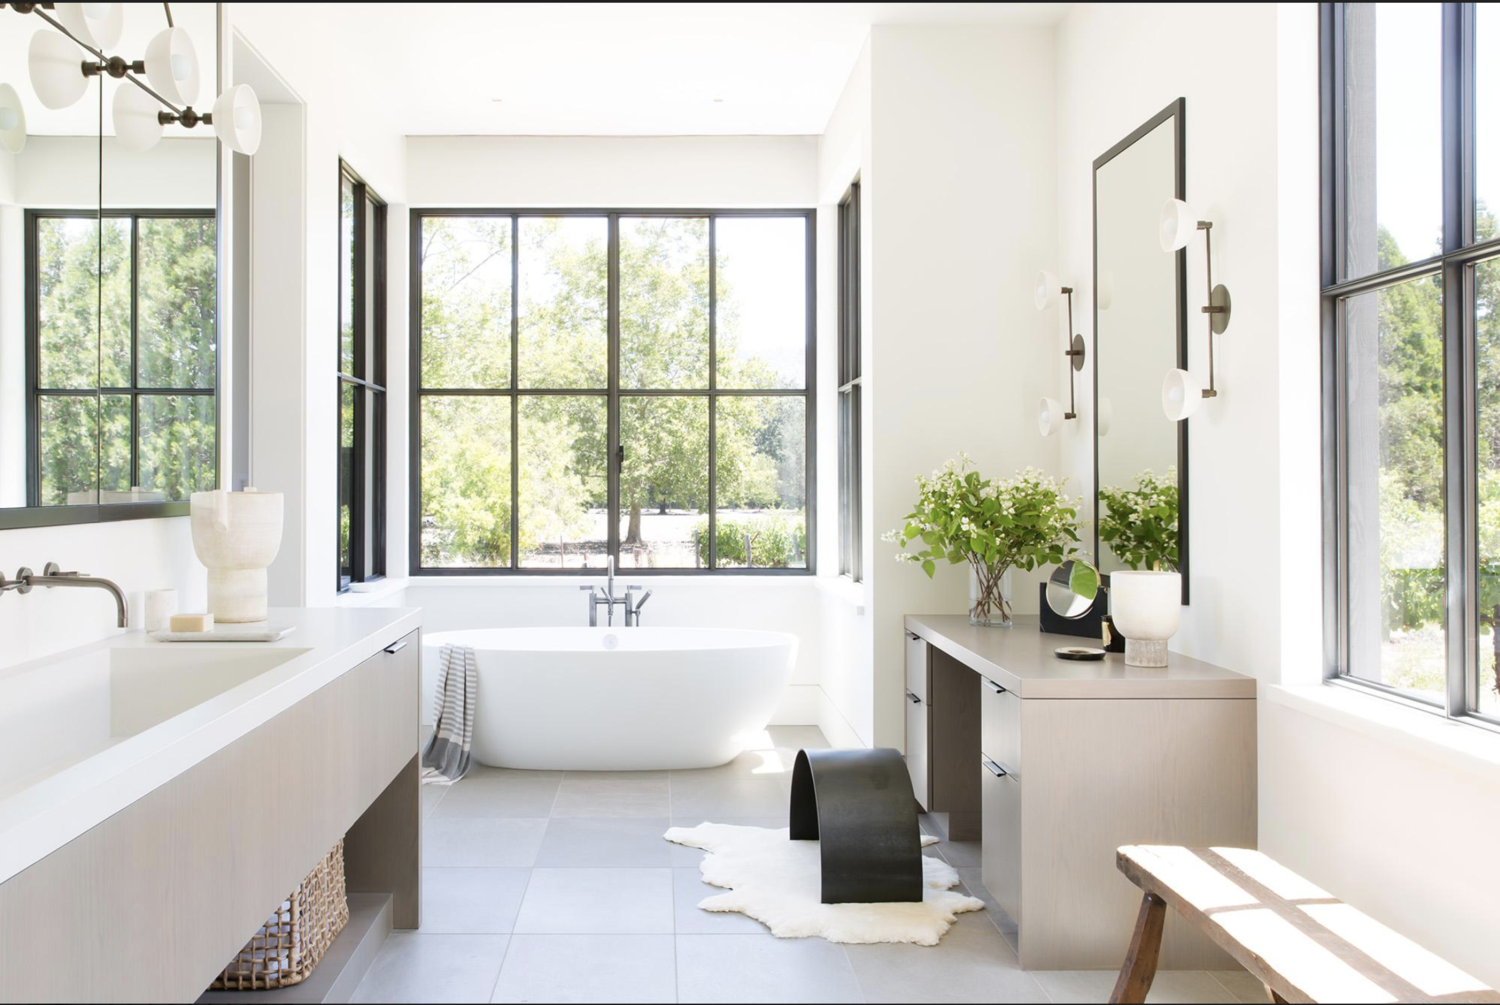 Vineyard Views | This dreamy bathroom provides so much natural light and a picturesque scene of the rolling vineyards just outside.